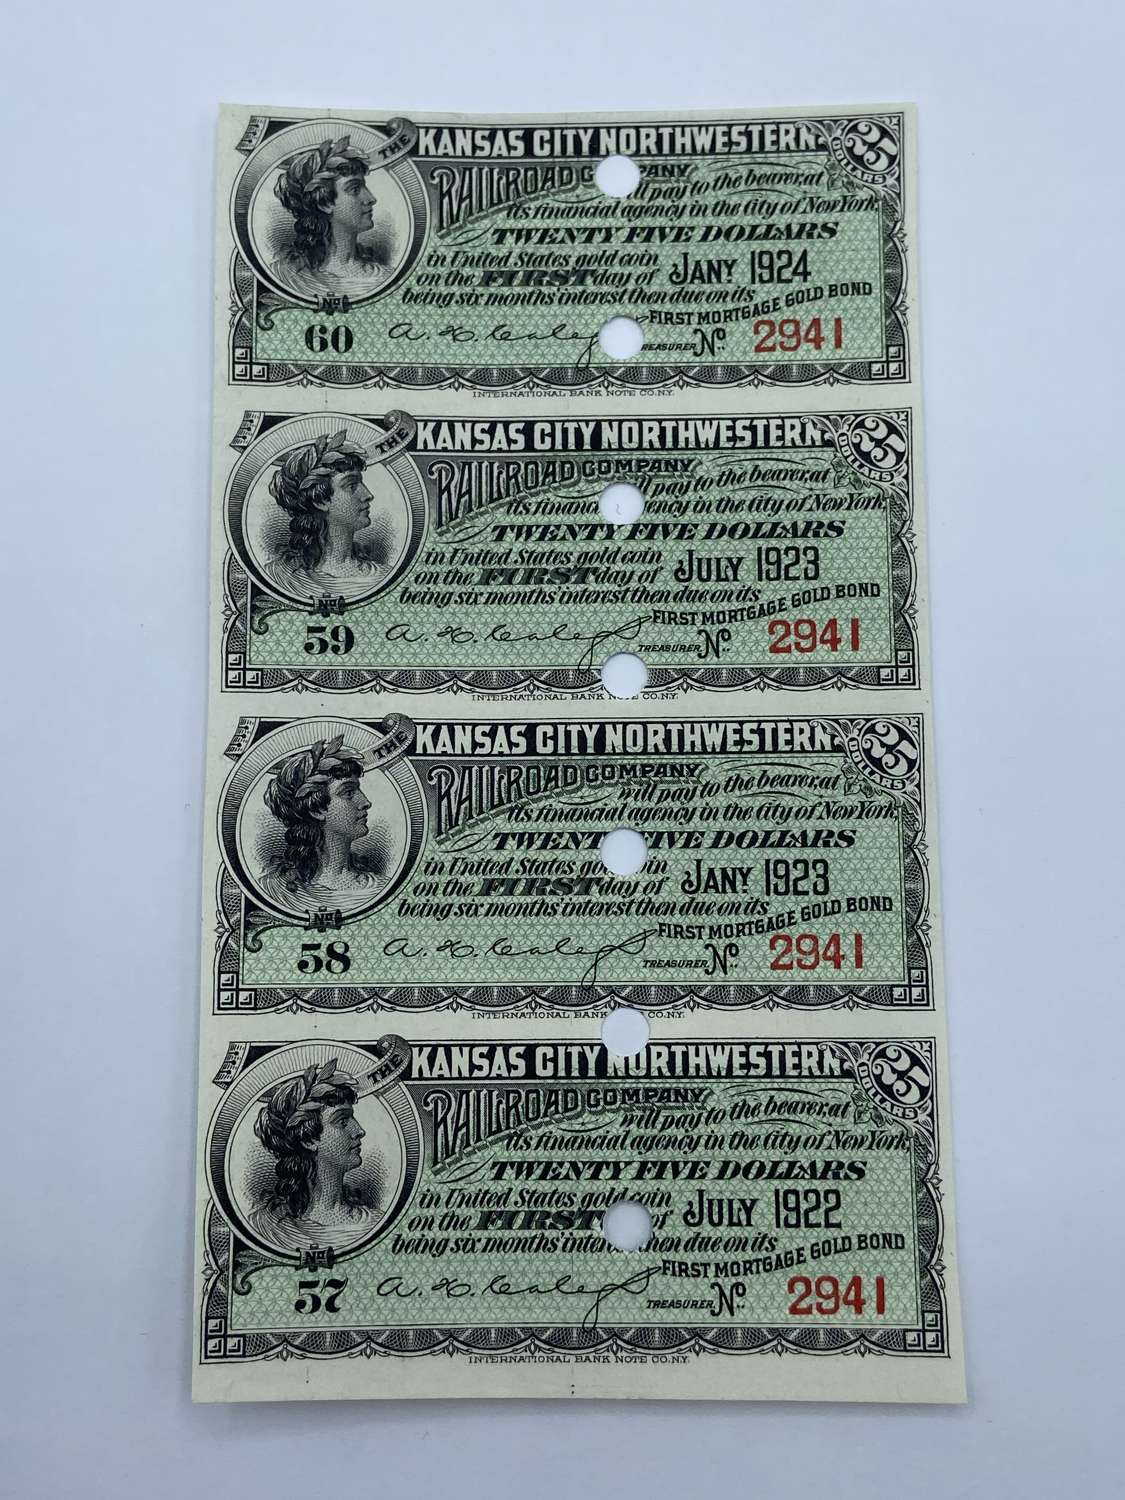 1922-24 Kansas City Northwestern Railroads Company 25 Dollar Bonds